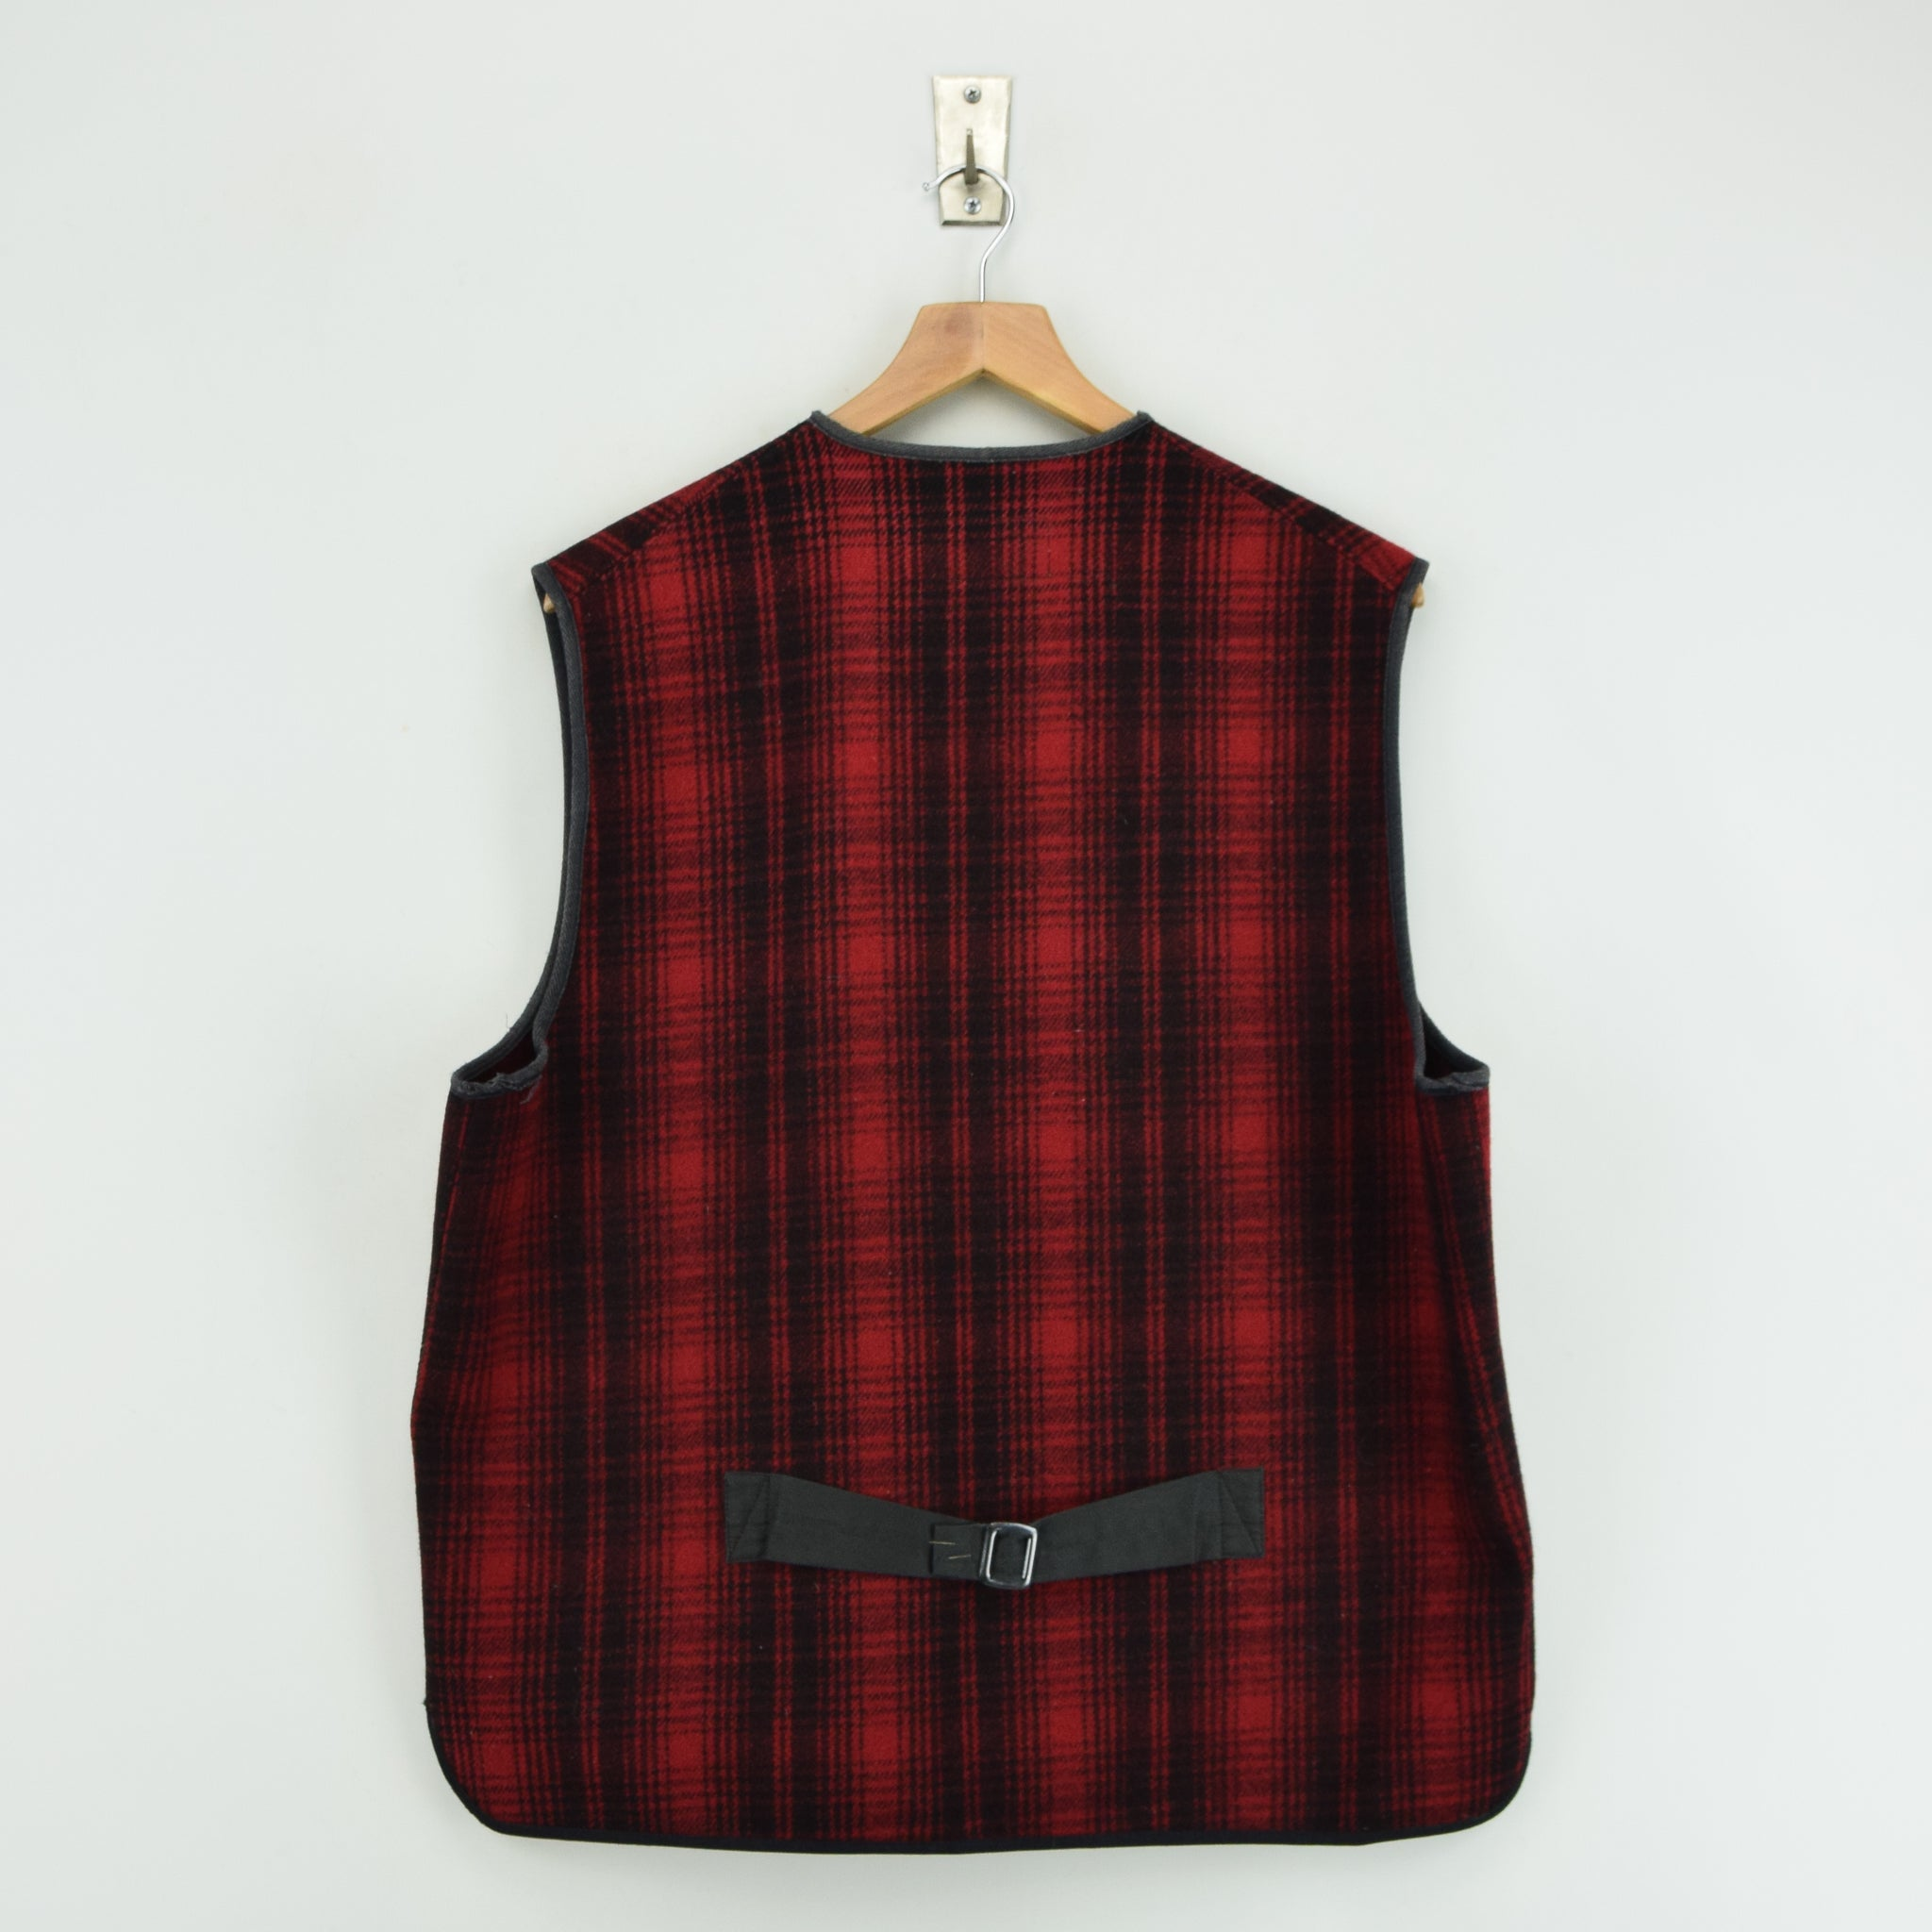 Vintage LL Bean Buffalo Plaid Wool Hunting Waistcoat Vest Made in USA L / XL back